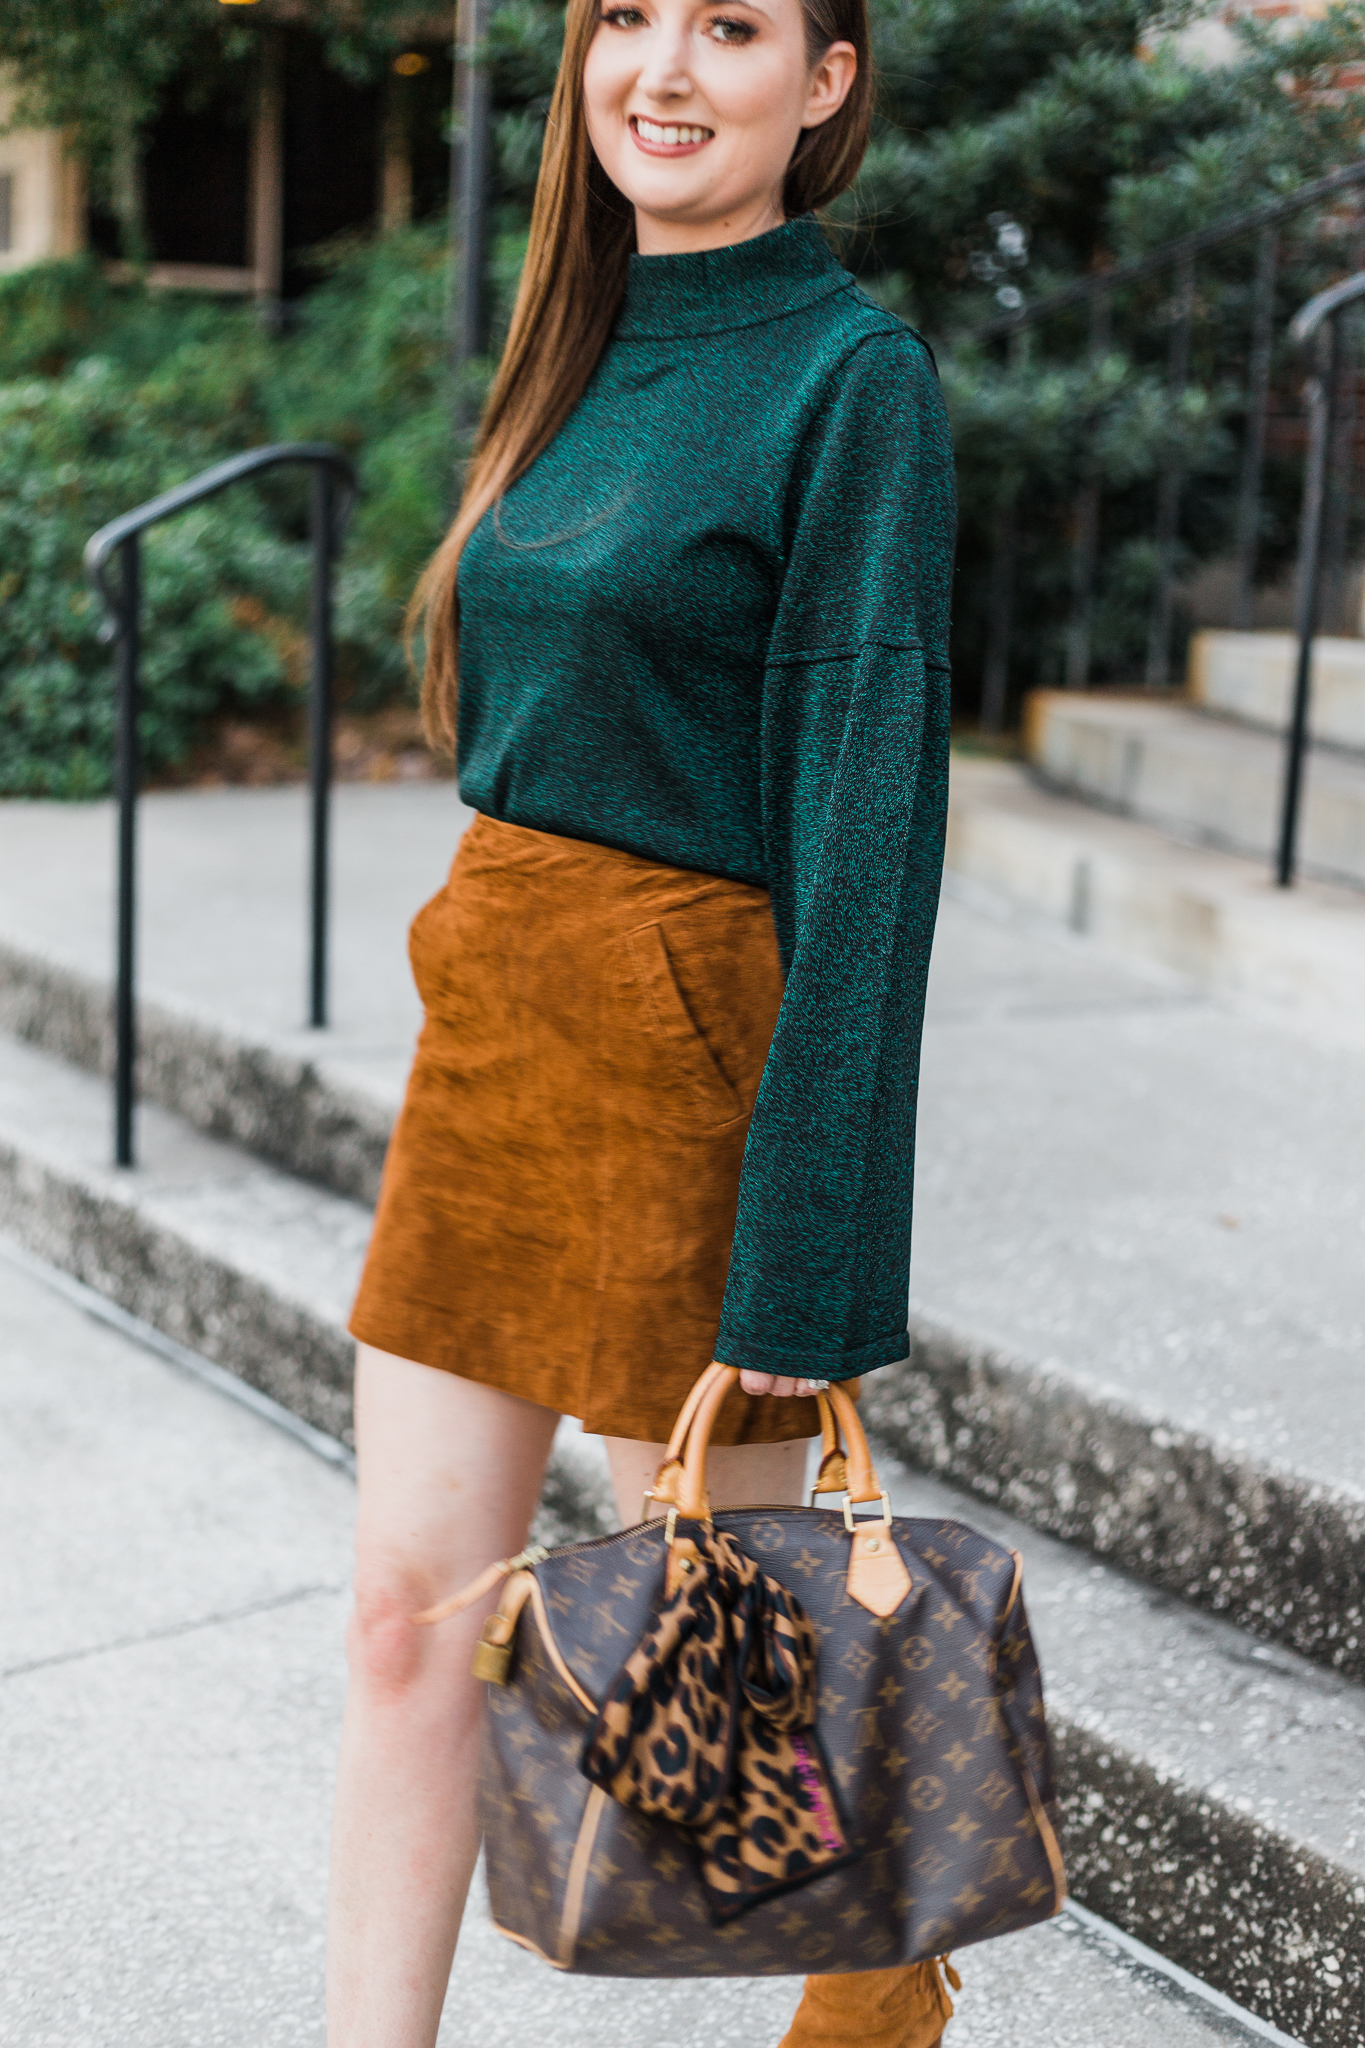 Sparkly green sweater and suede skirt